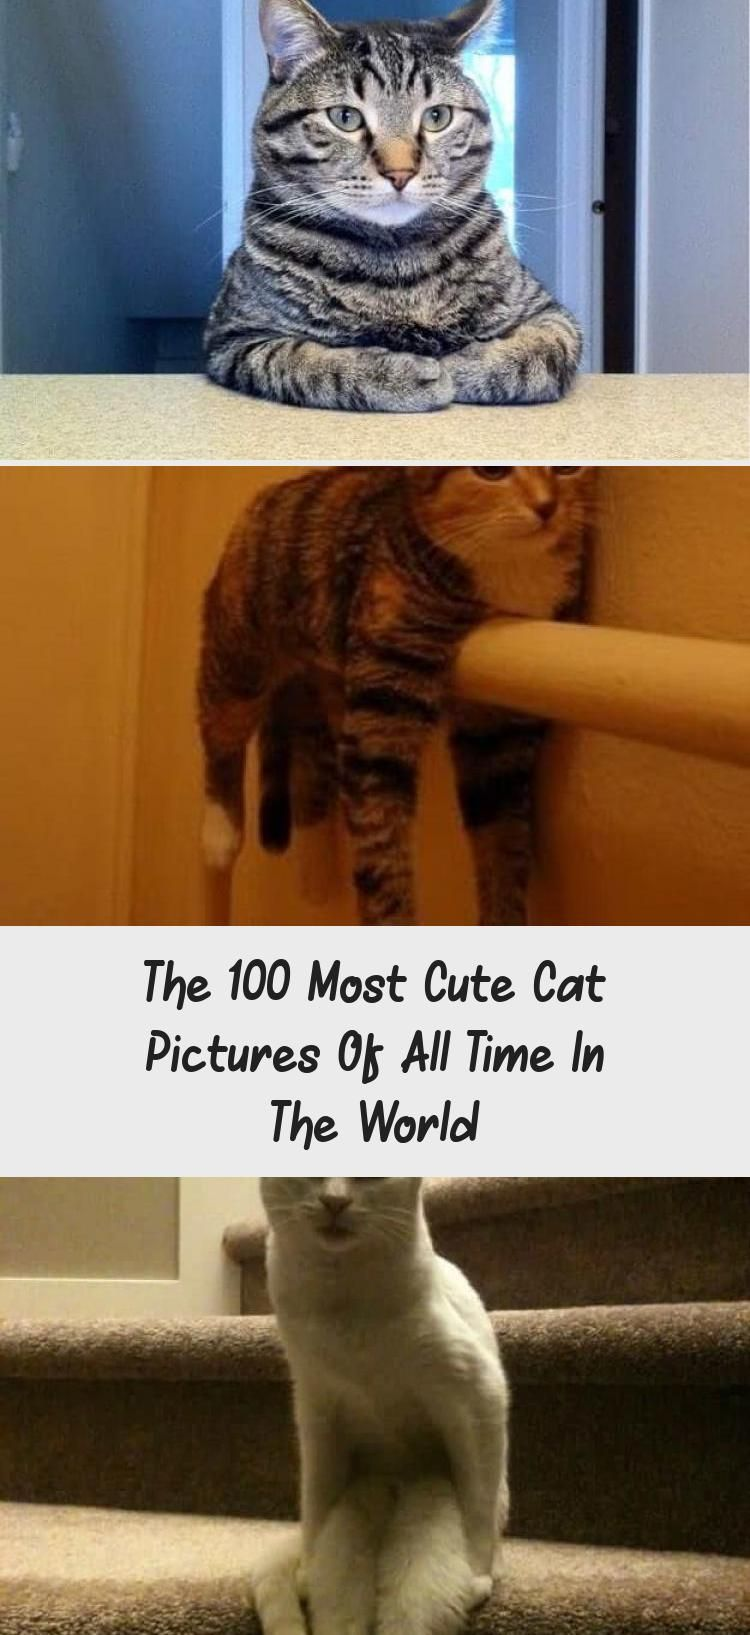 The 100 Most Cute Cat Pictures Of All Time In The World Humor Whitekittens Squeeeee White Kitten Licks Window Kitty Memes Cat Humor Funny Joke Gato Chat 2020